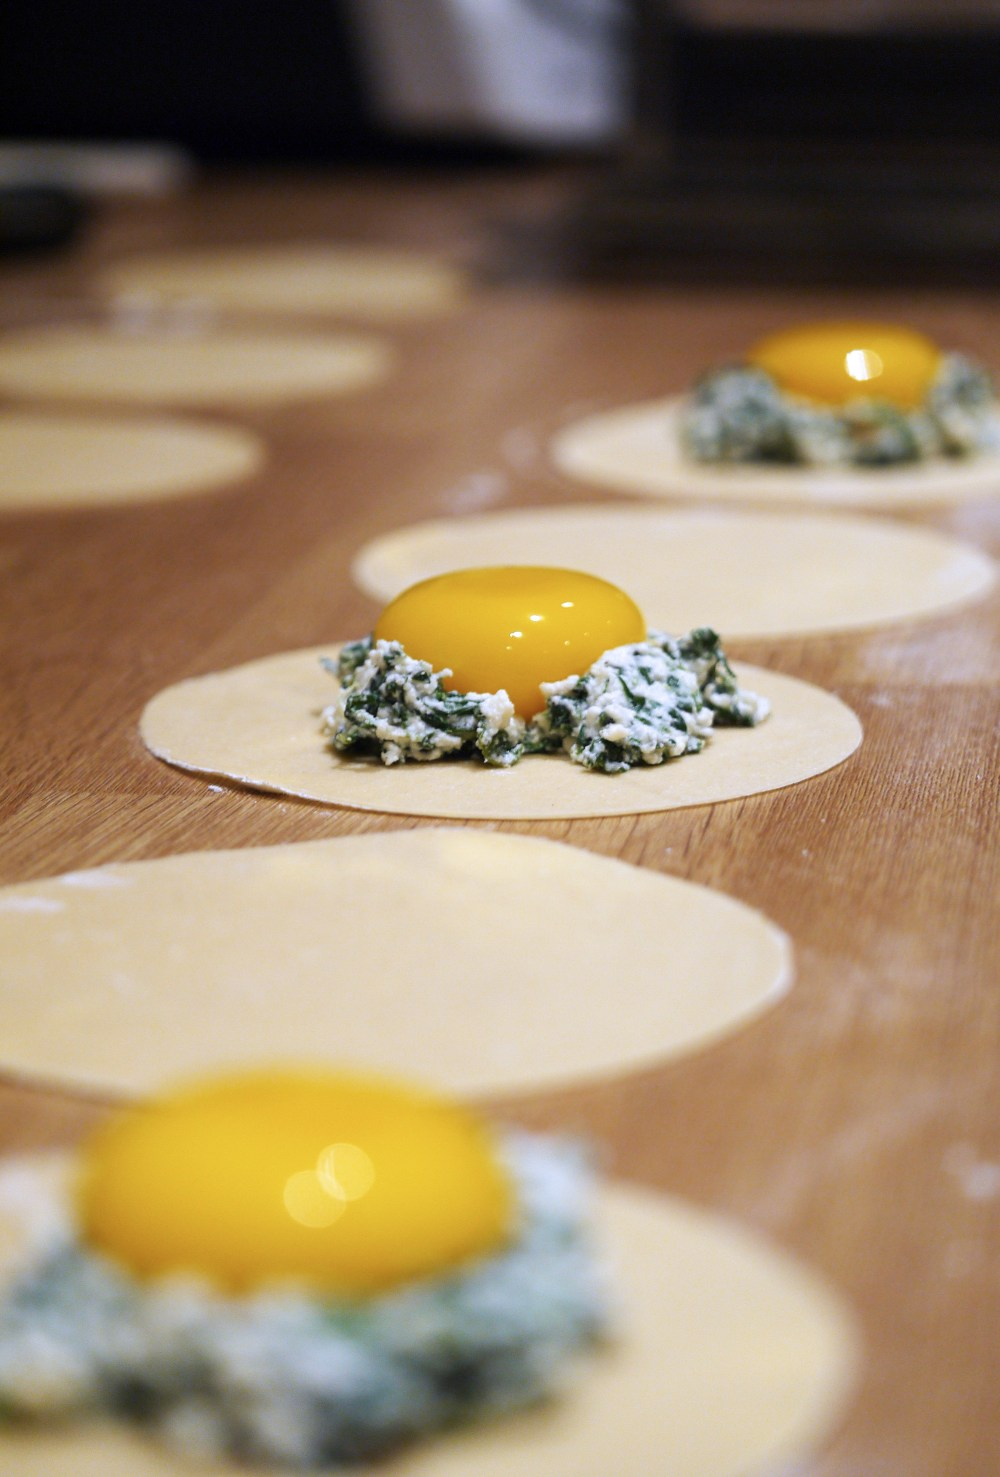 3 homemade ravioli circles with spinach and ricotta rings containing egg yolks